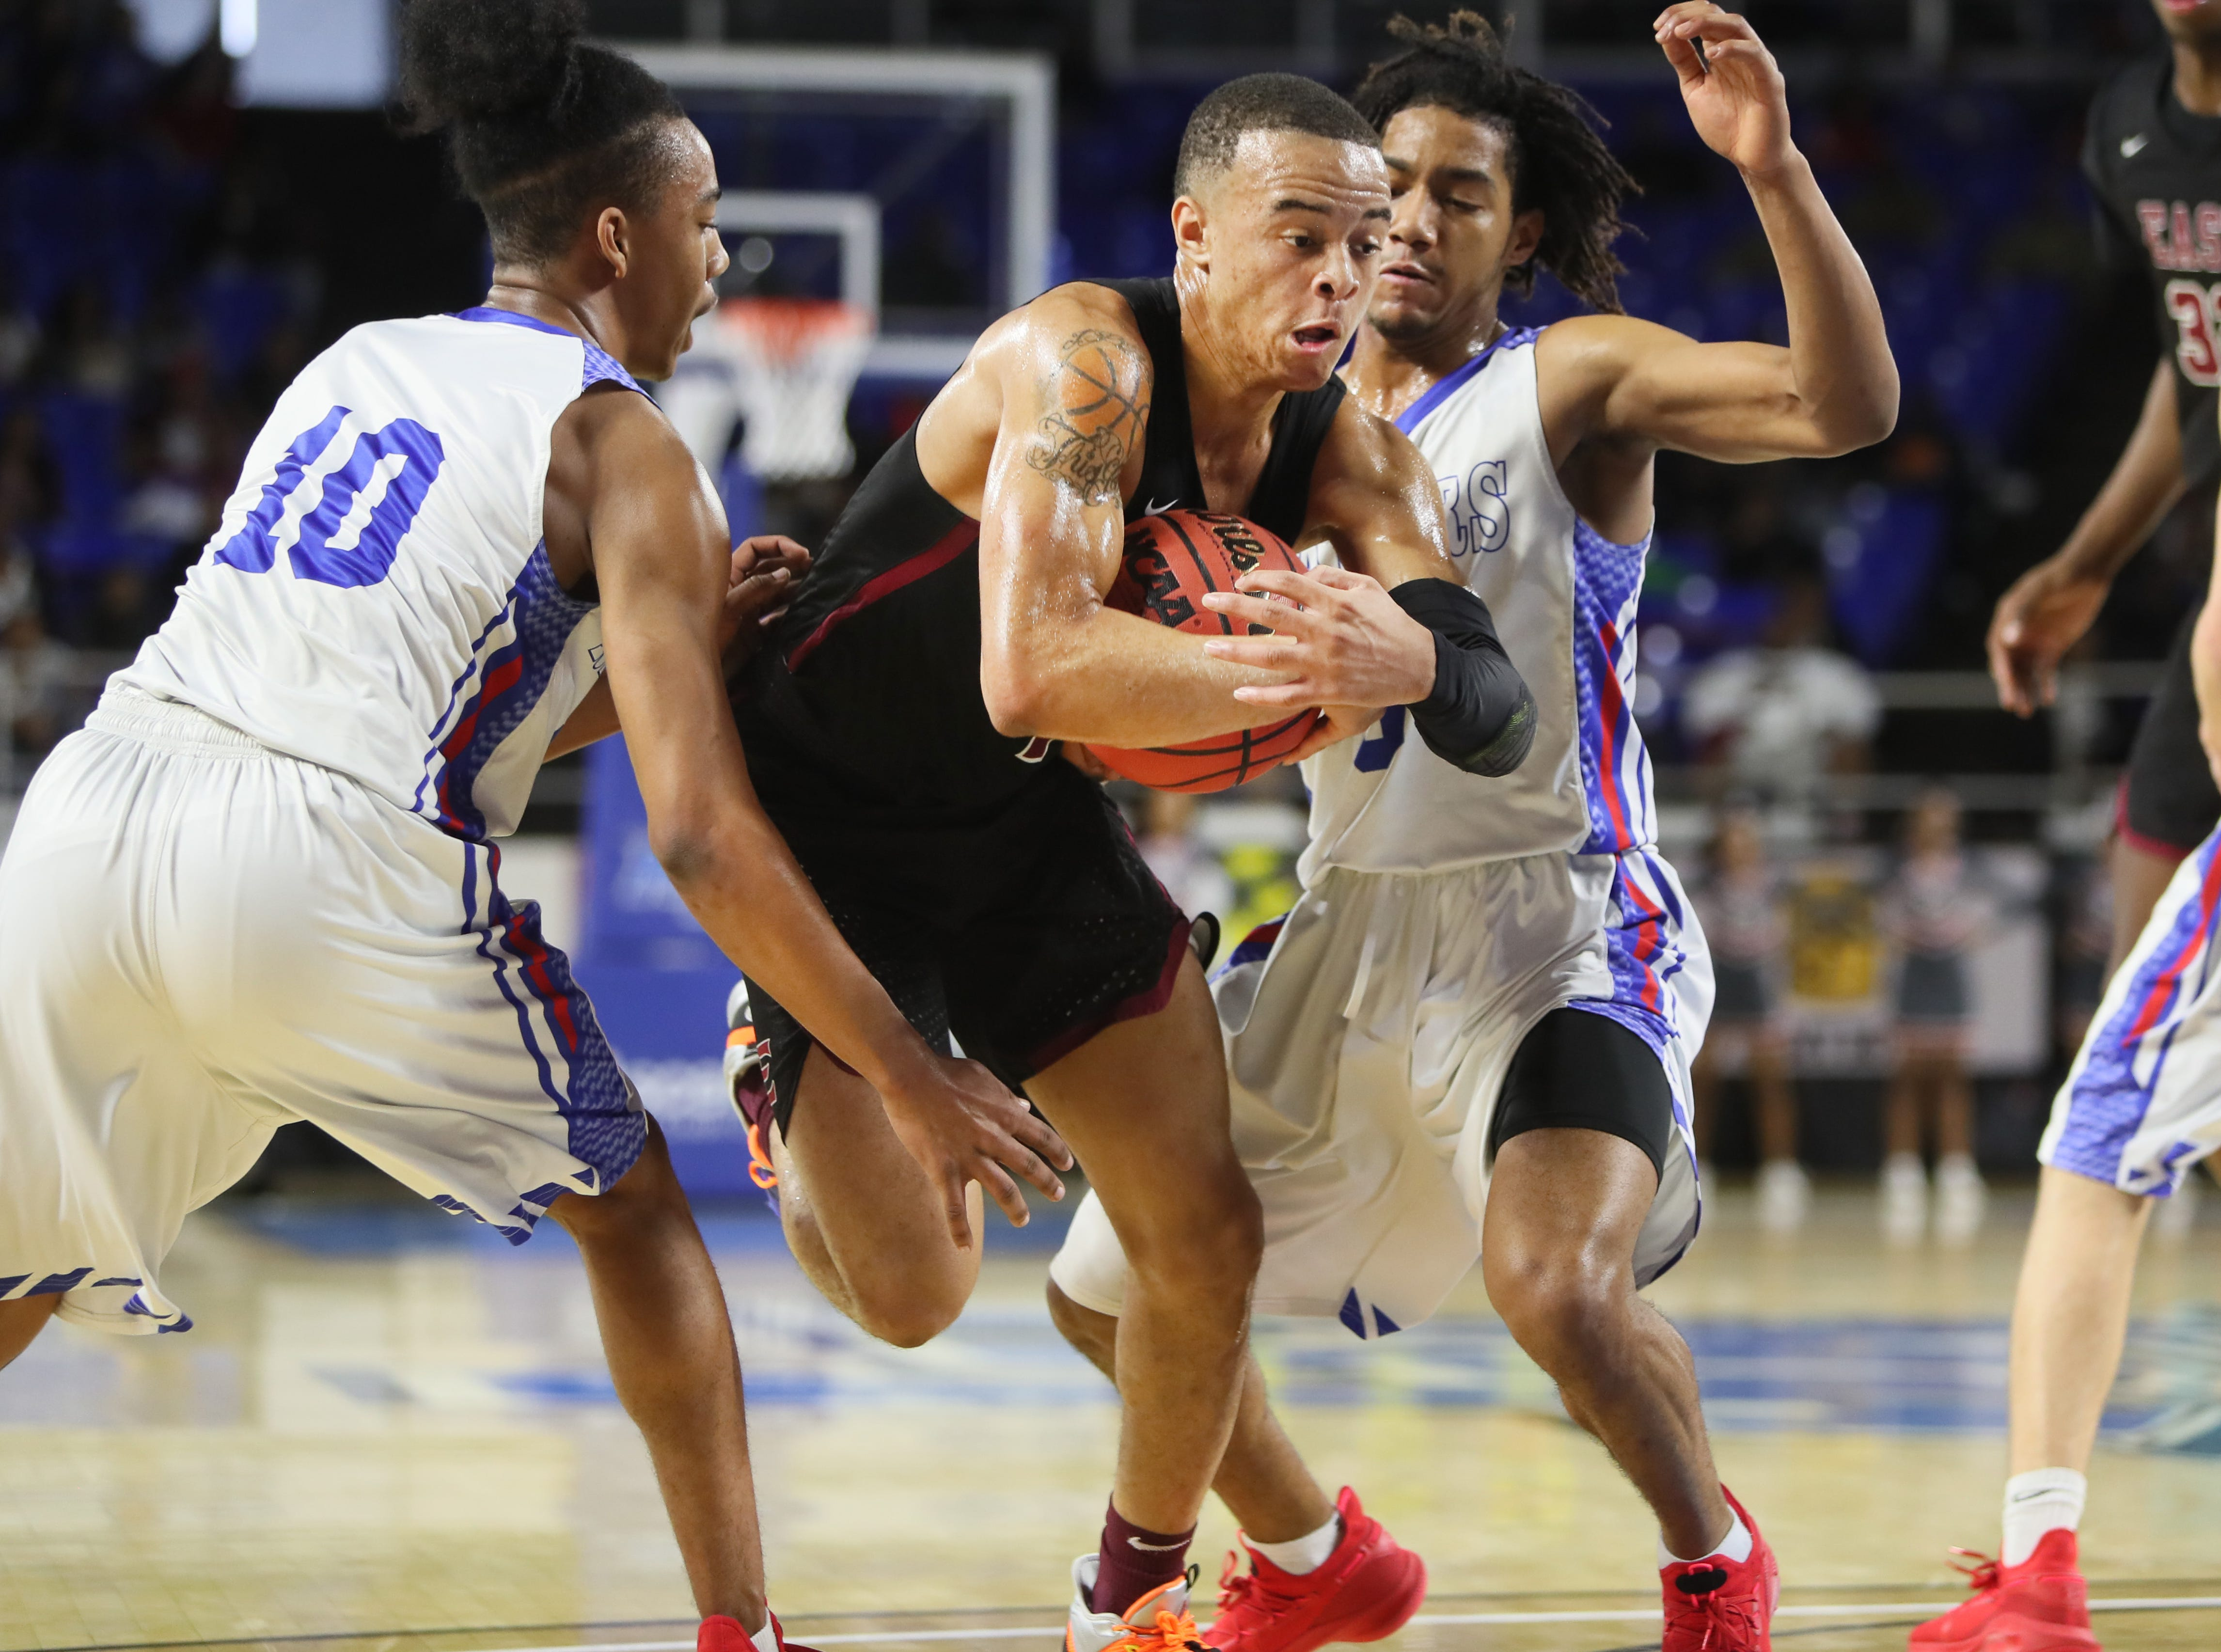 Memphis East's Antonio Thomas drives in between Cleveland's Jacobi Wood, left, and Isaiah Johnson during the TSSAA Division I basketball state tournament at the Murphy Center in Murfreesboro, Tenn. on Thursday, March 14, 2019.